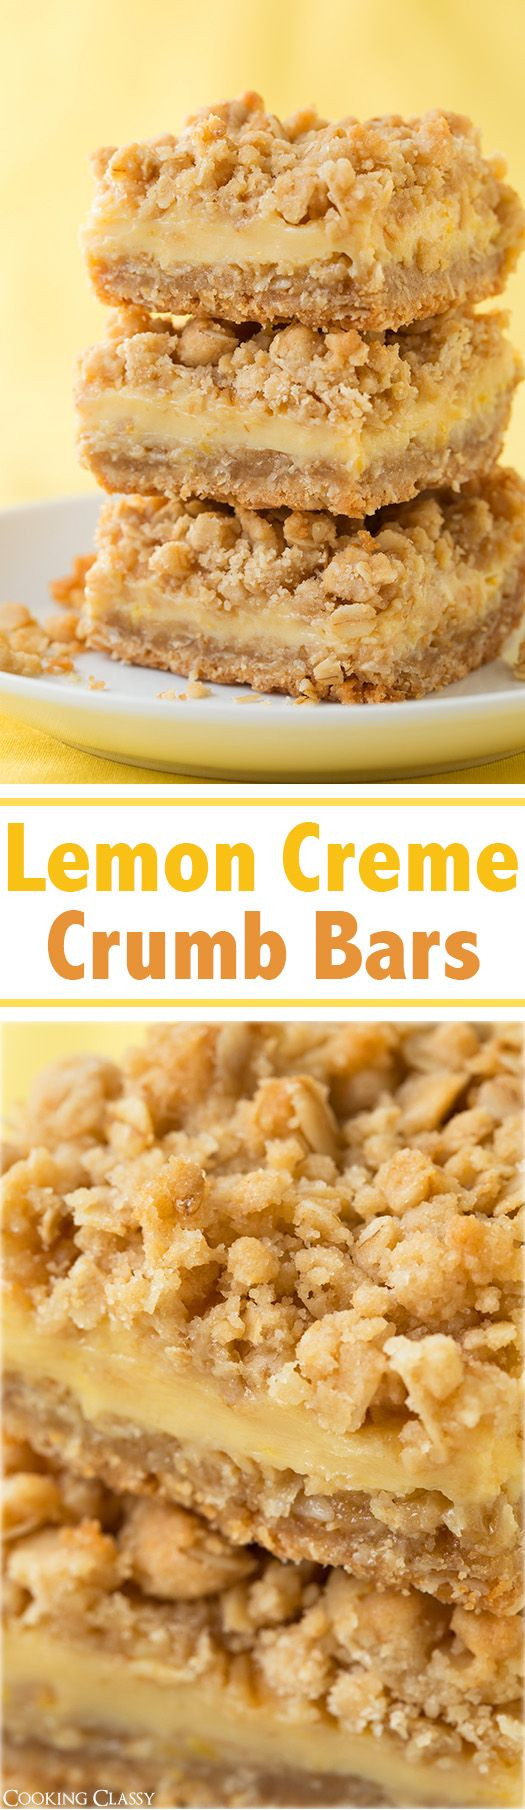 "Lemon Creme Crumb Bars Recipe via Cooking Classy - ""these are probably my favorite bars I've ever had (these and the creme brulee cheesecake bars I made). So amazingly good!!"" The BEST Easy Lemon Desserts and Treats Recipes - Perfect For Easter, Mother's Day Brunch, Bridal or Baby Showers and Pretty Spring and Summer Holiday Party Refreshments!"